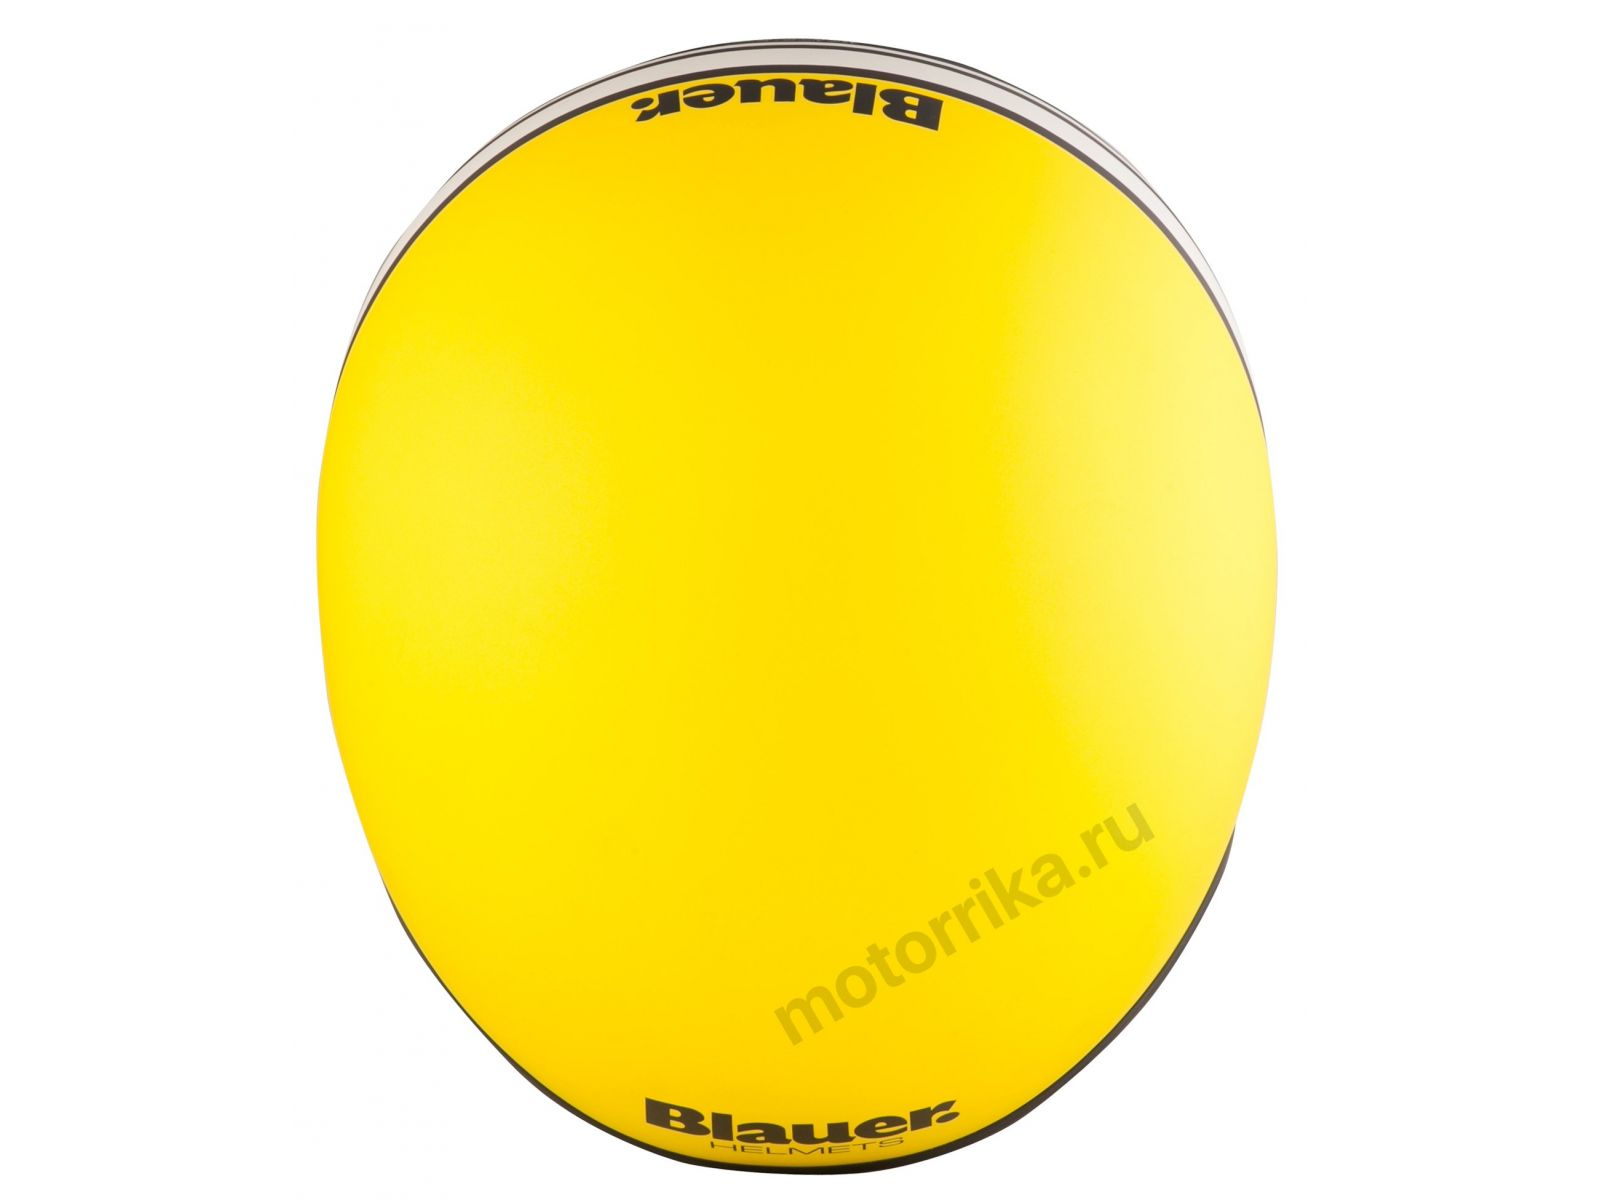 Мотошлем Blauer H.T. Pilot Yellow Matt